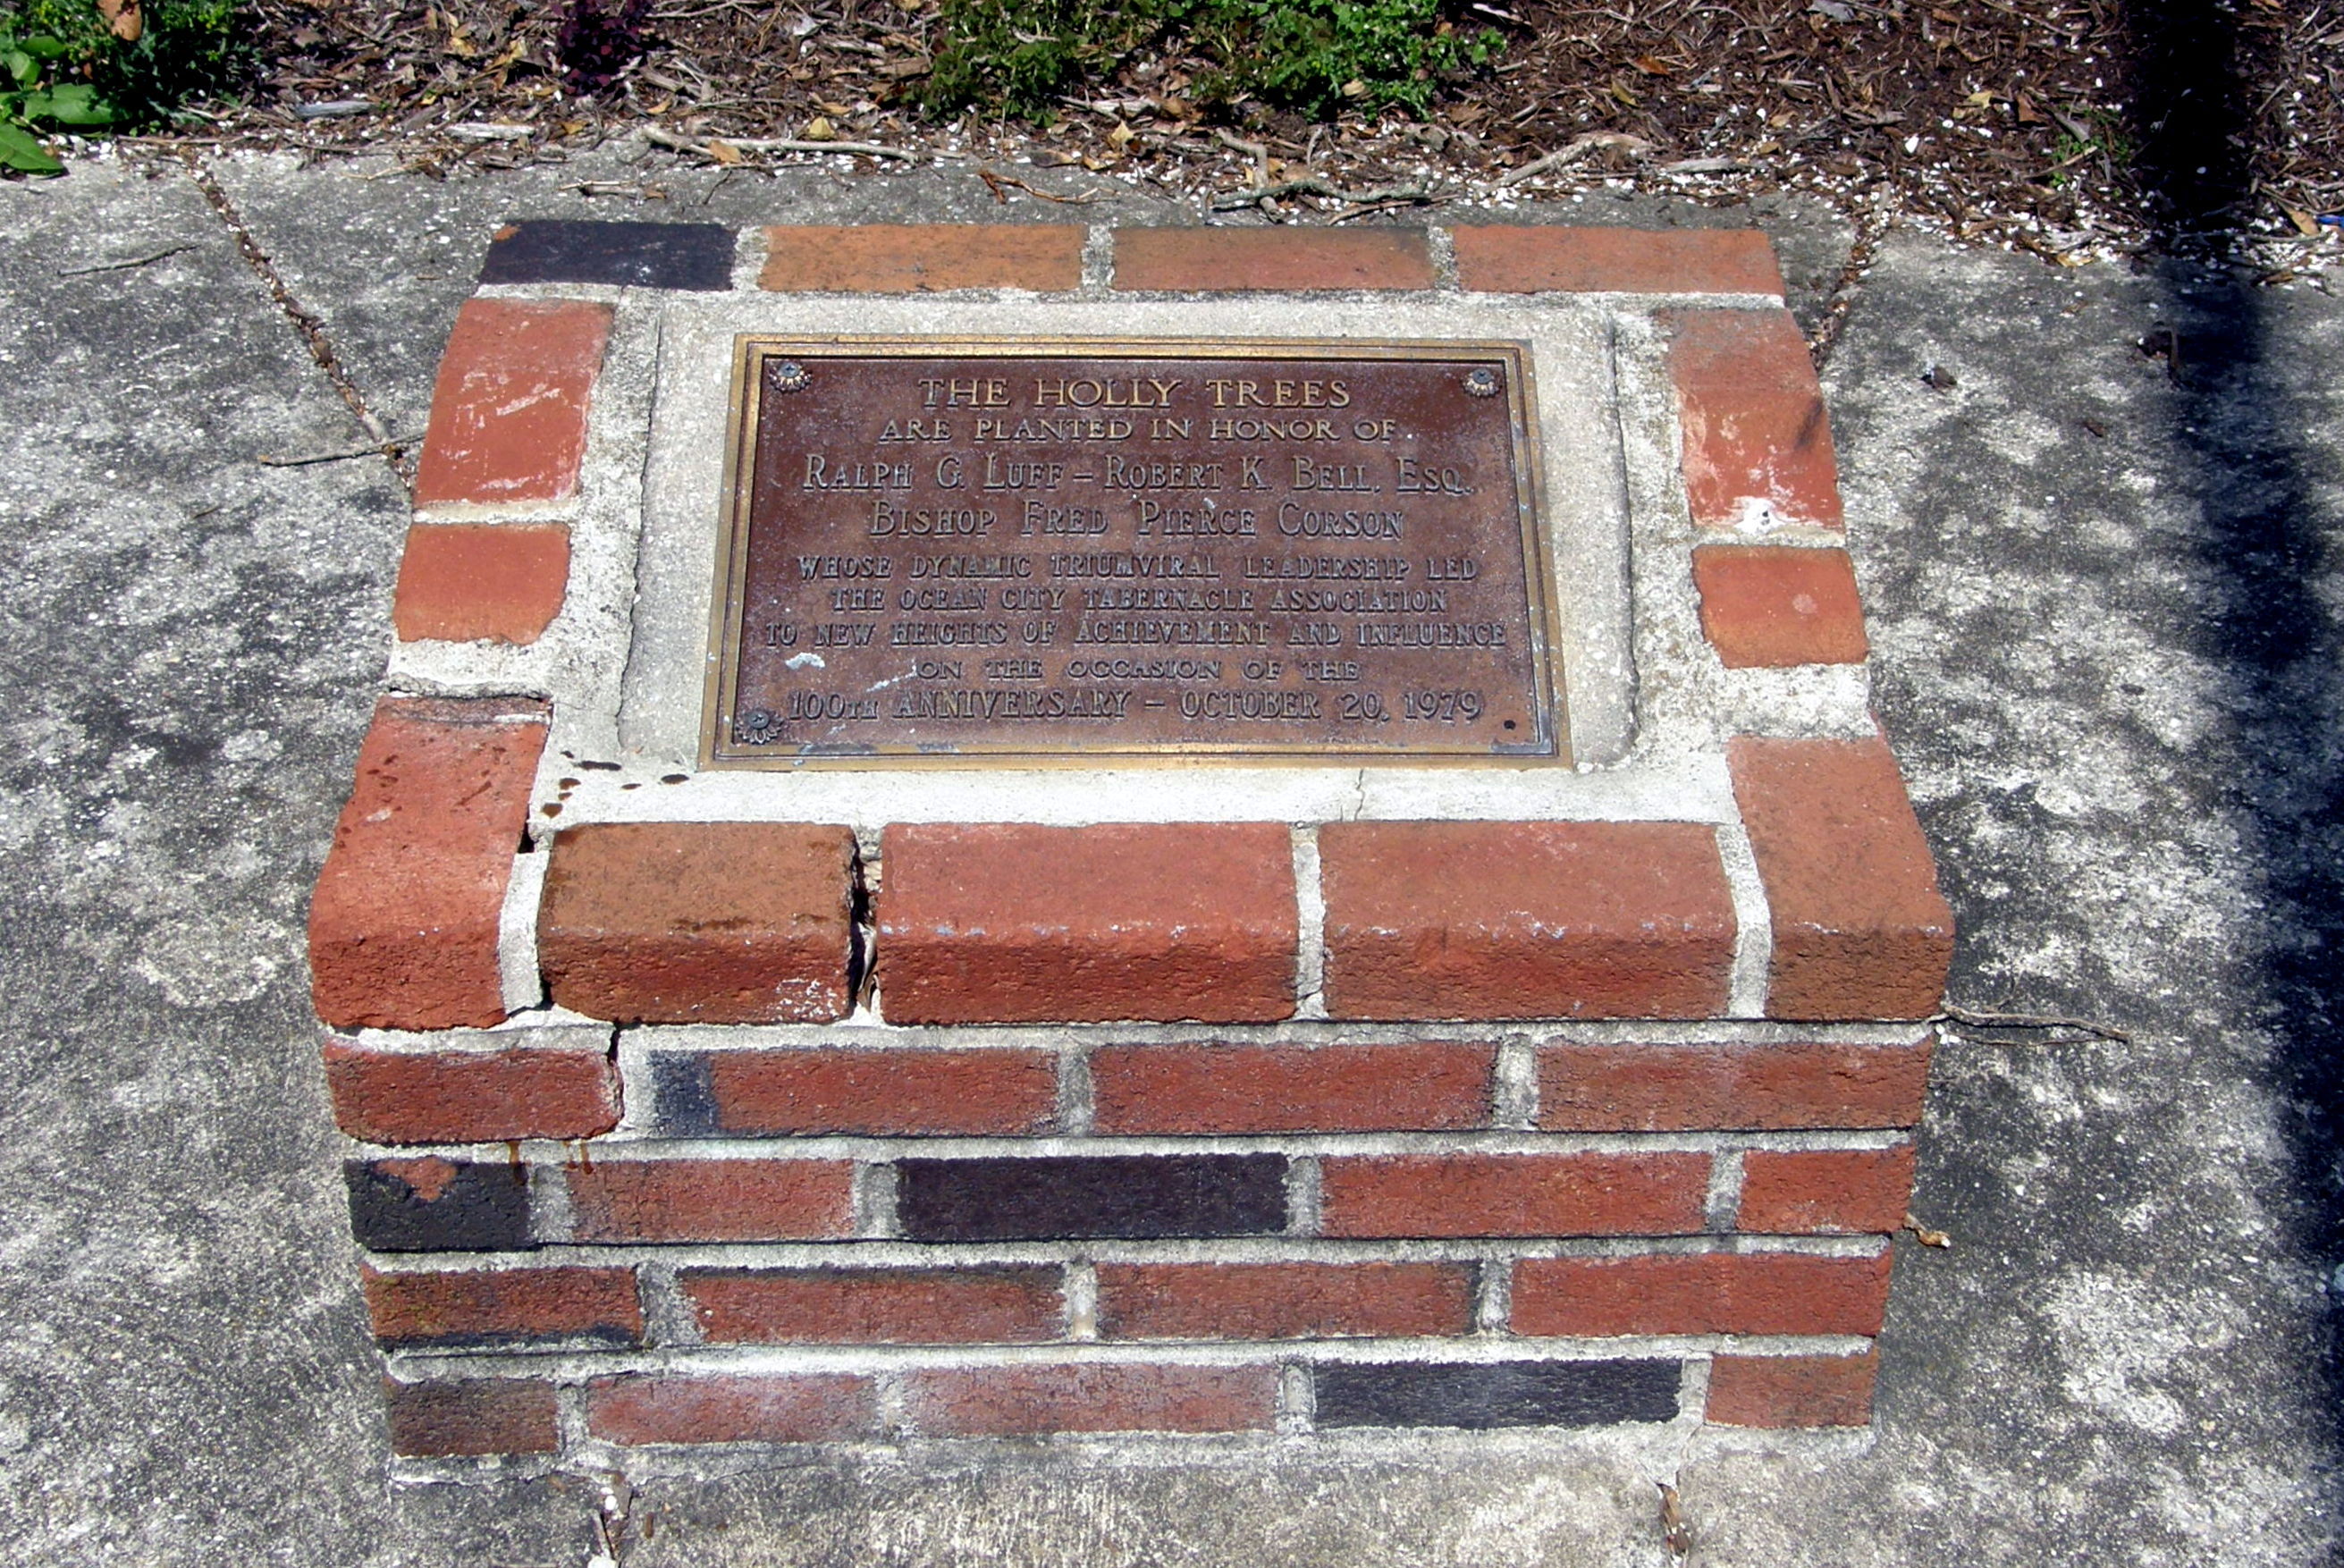 Ocean City Tabernacle Marker at the holly trees